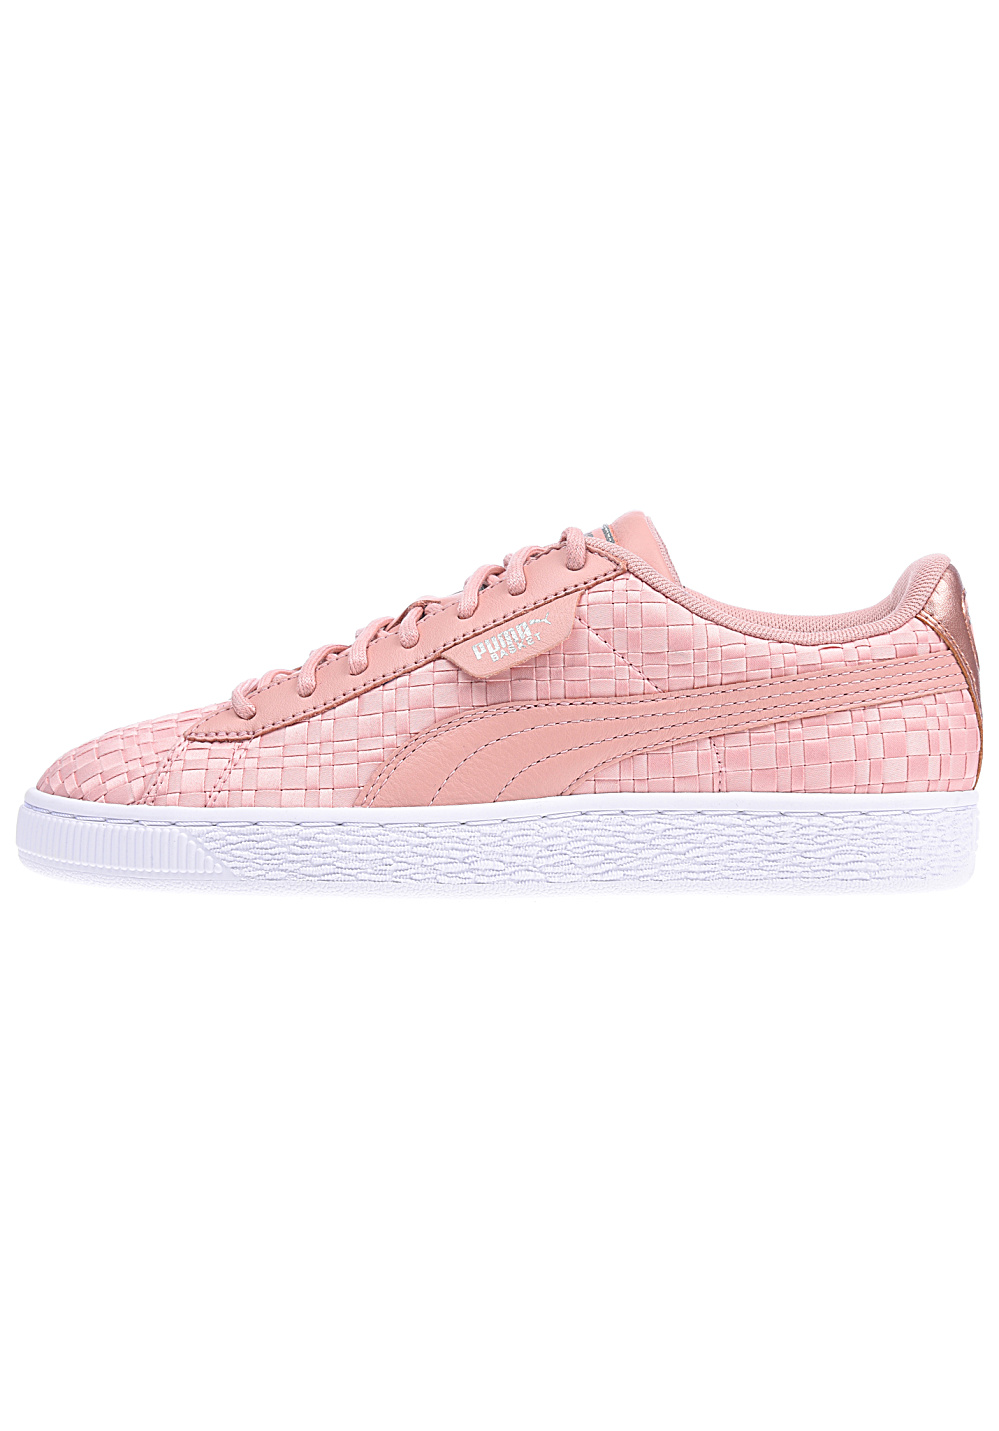 competitive price 9cf94 8d3cd Puma Basket Satin En Pointe - Sneakers for Women - Pink